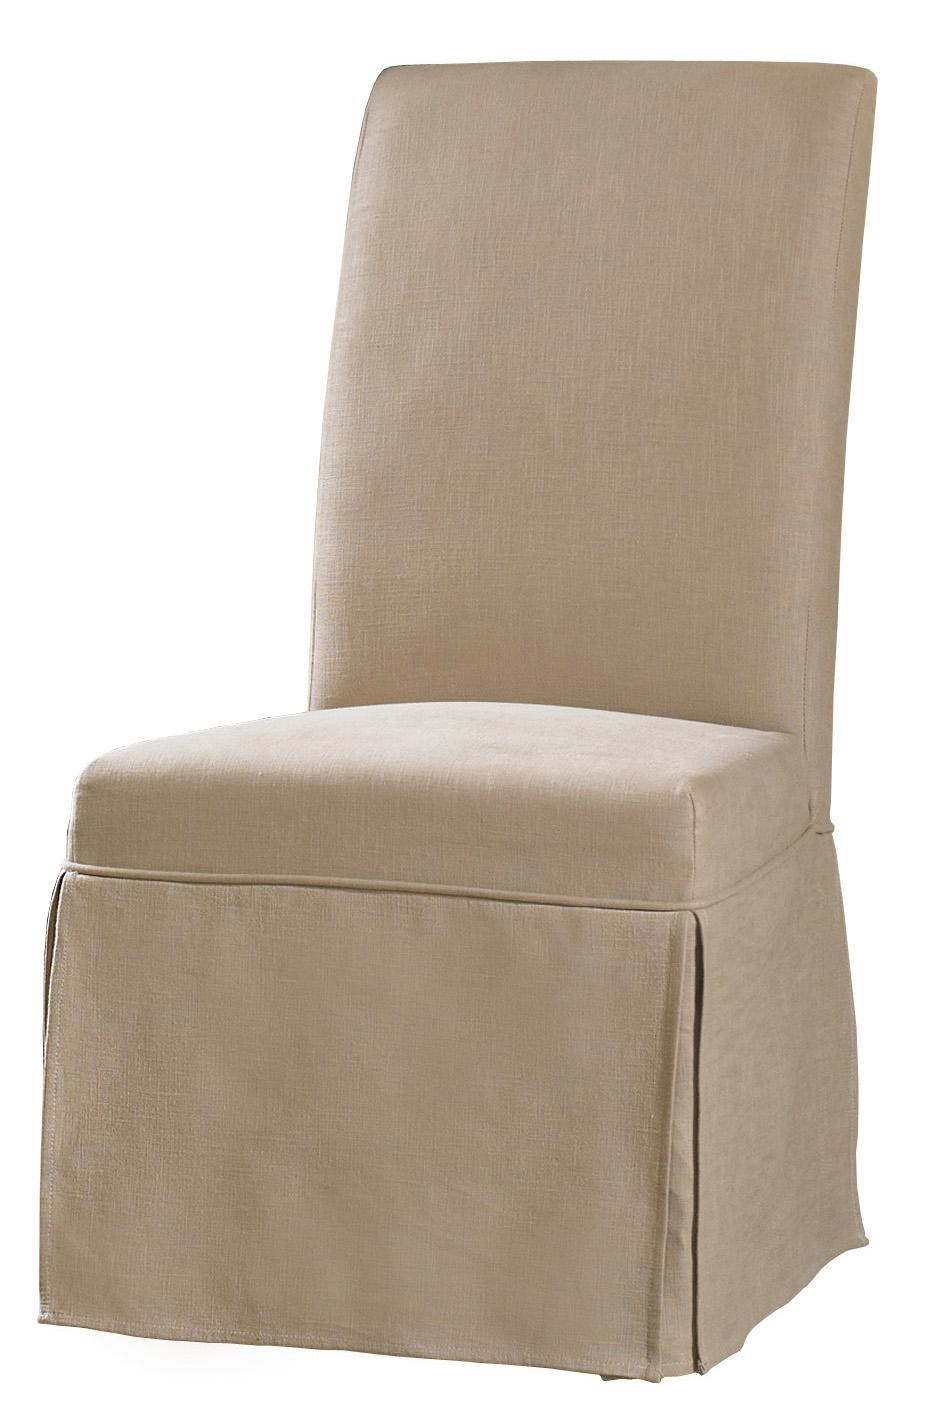 Decorator Chairs Clarice Skirted Slip Chair By Hooker Furniture